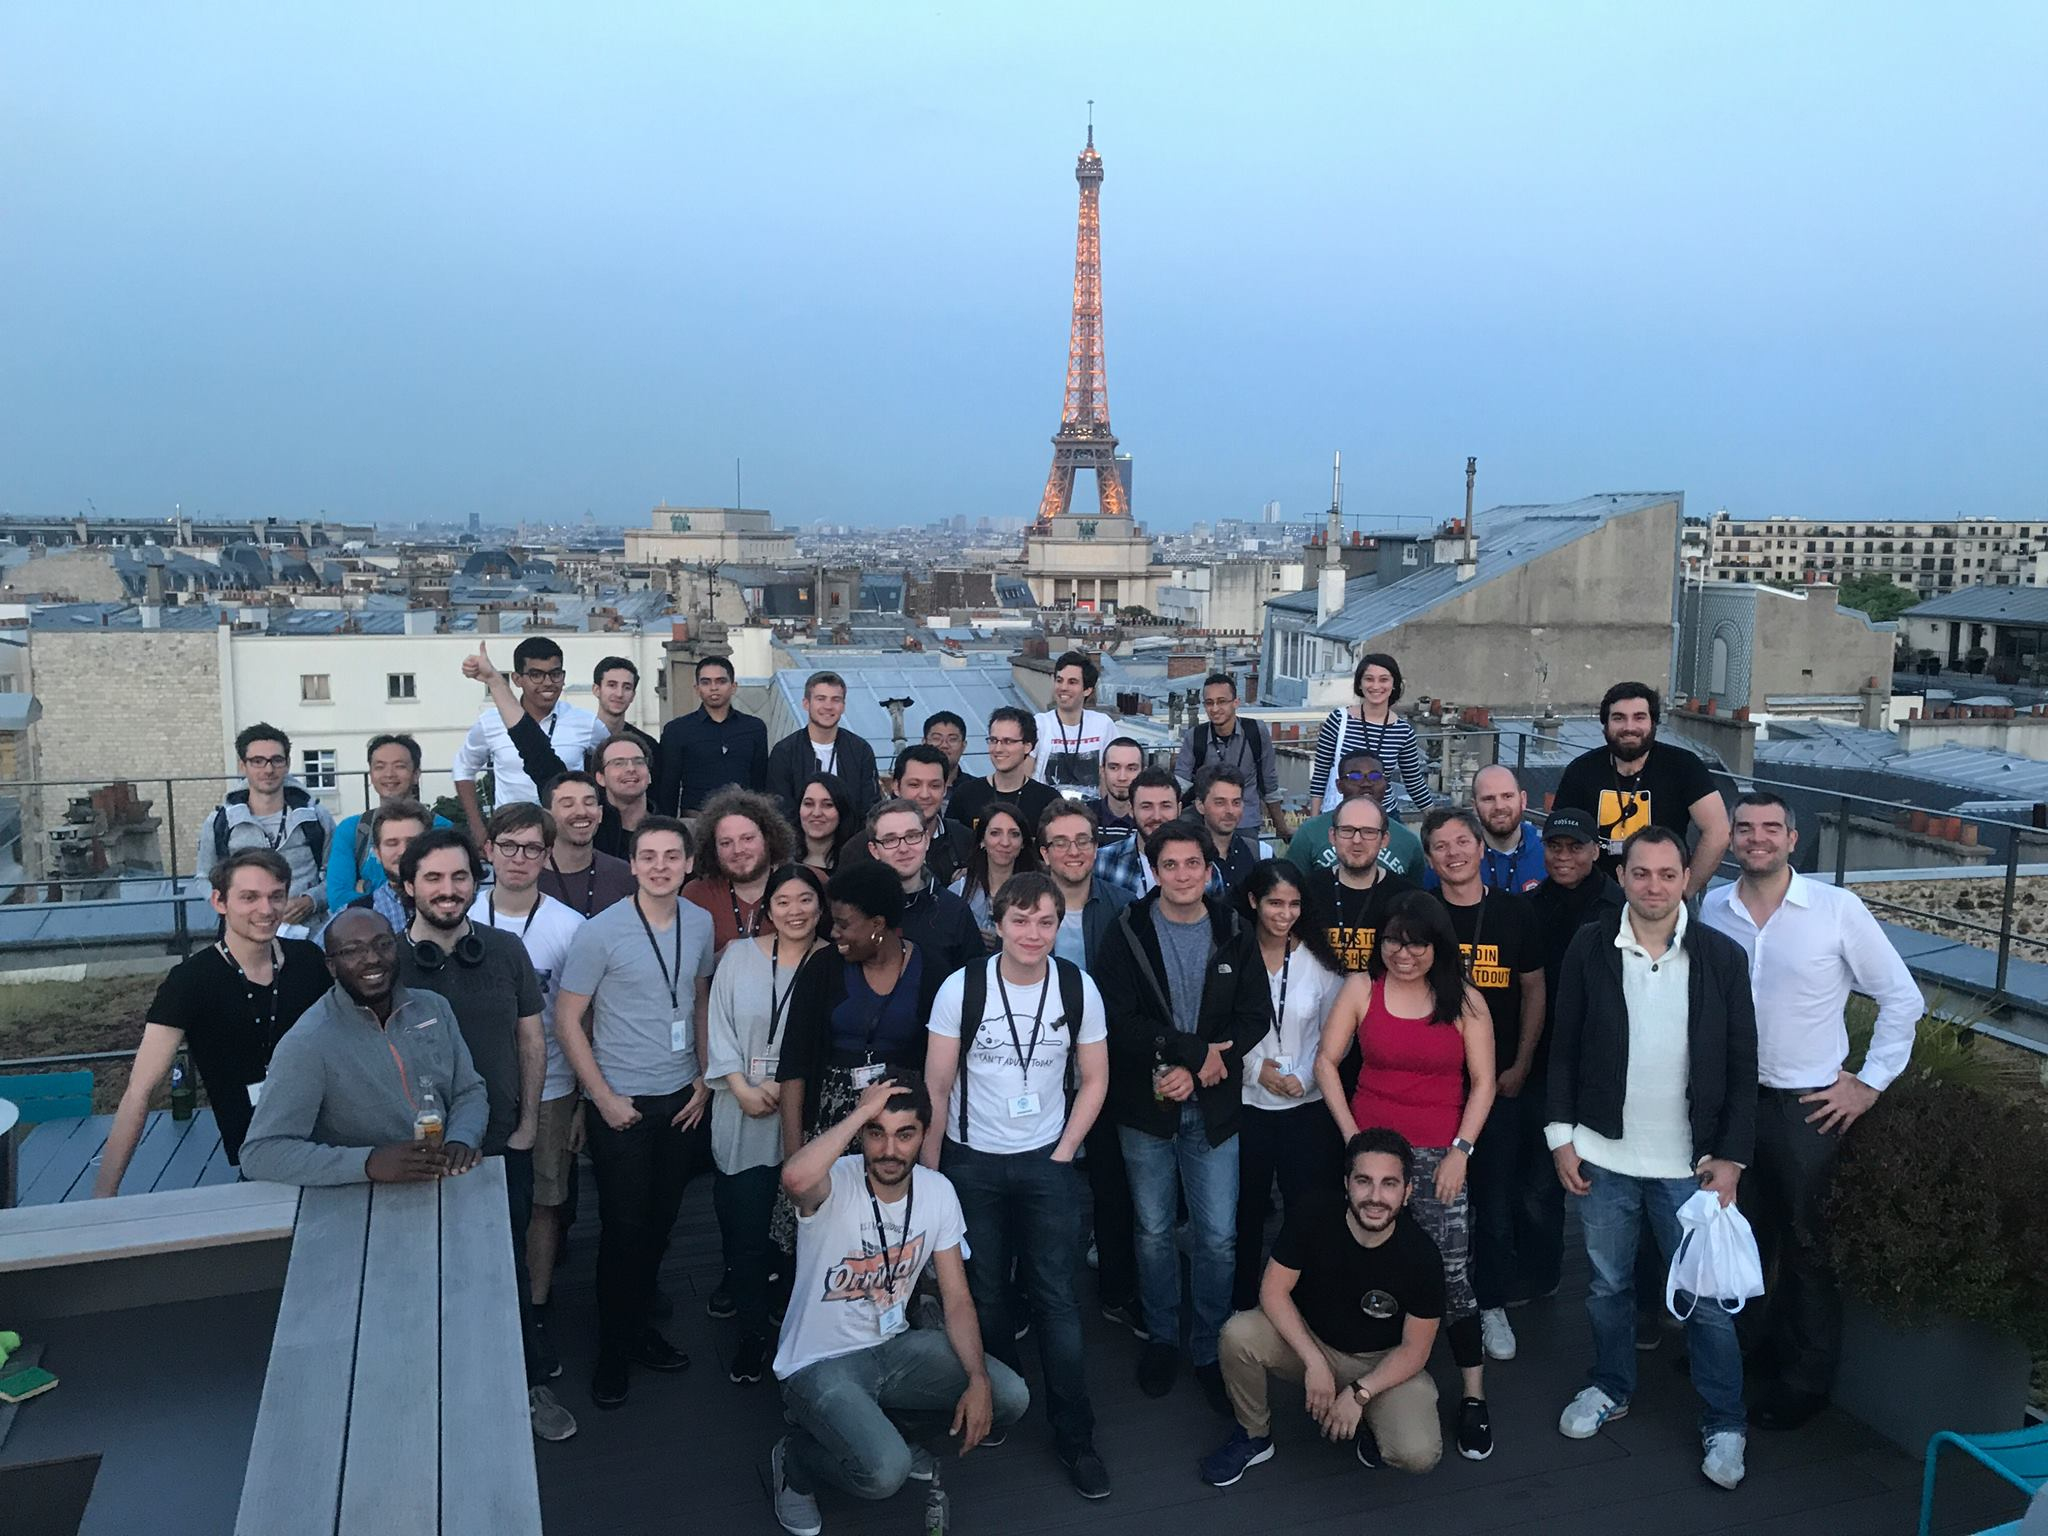 View on the Eiffel Tower with CodinGamers at Onepoint